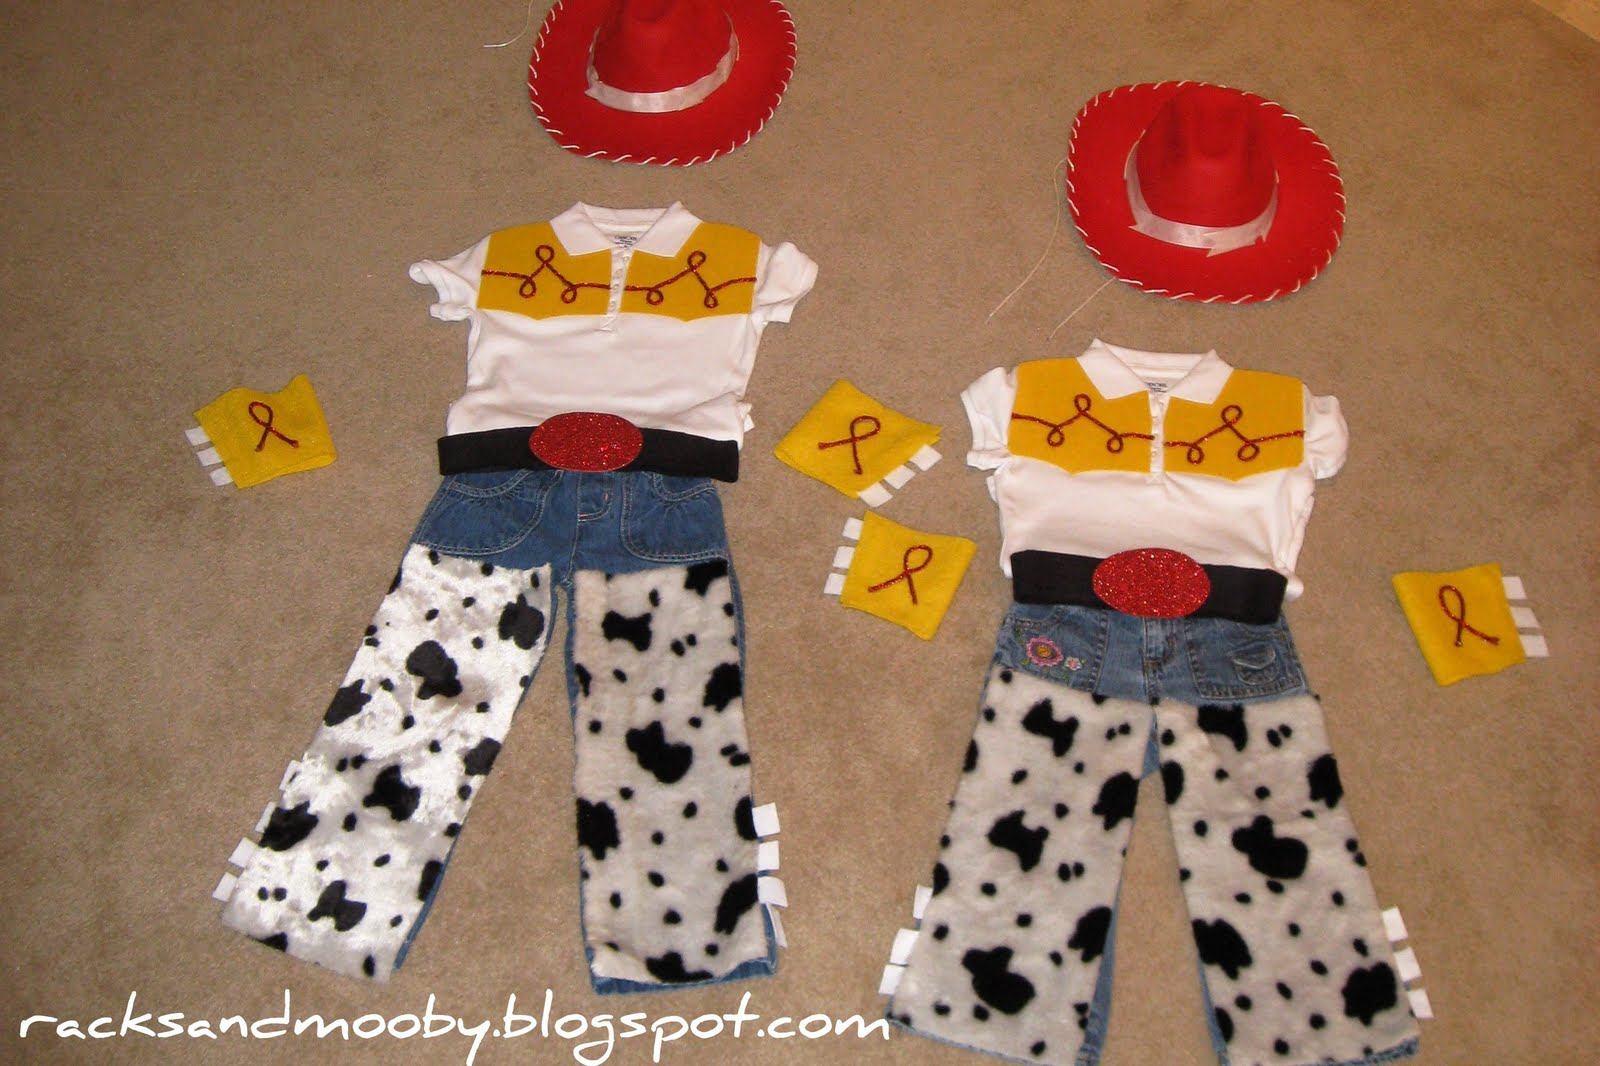 DIY Jessie (Toy Story) Toddler Costume - no sewing! & RACKS and Mooby: DIY Jessie (Toy Story) Toddler Costume - no sewing!